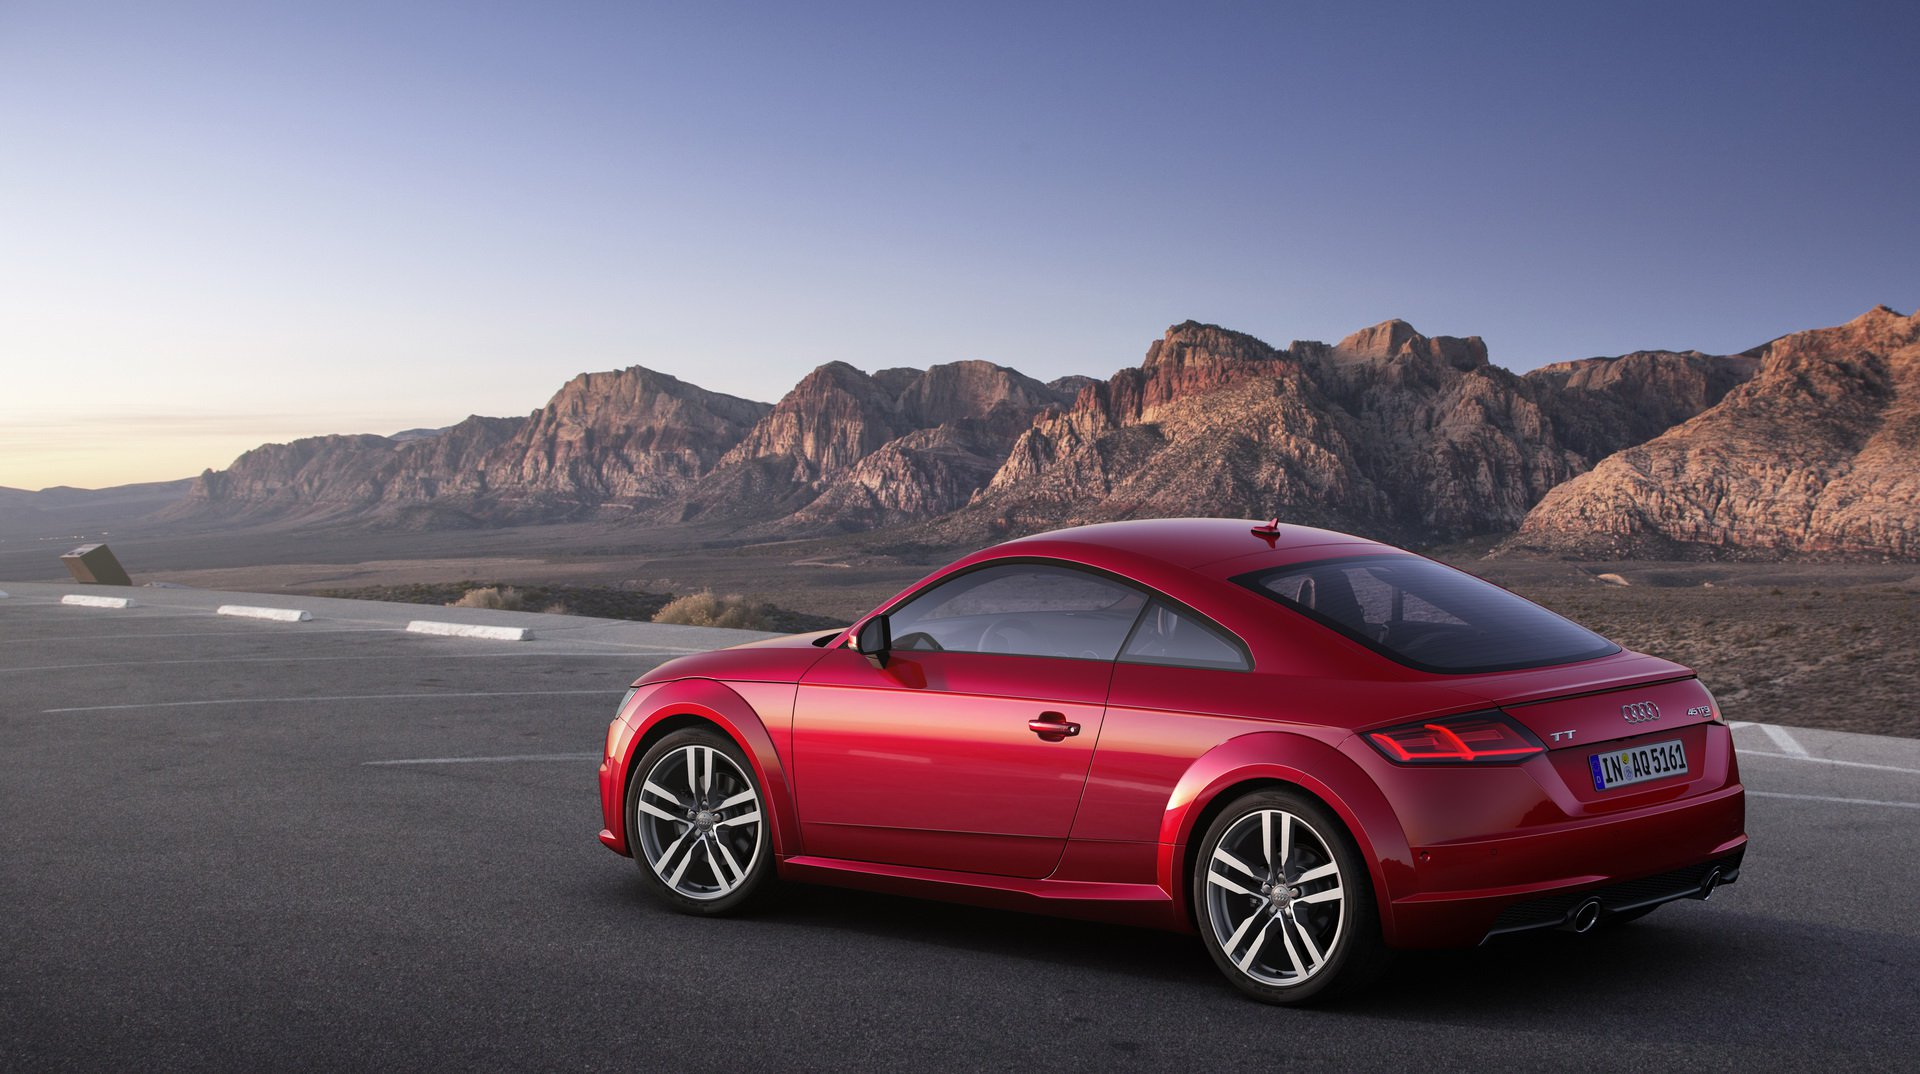 2019 audi tt officially revealed with 20 tfsi making 197